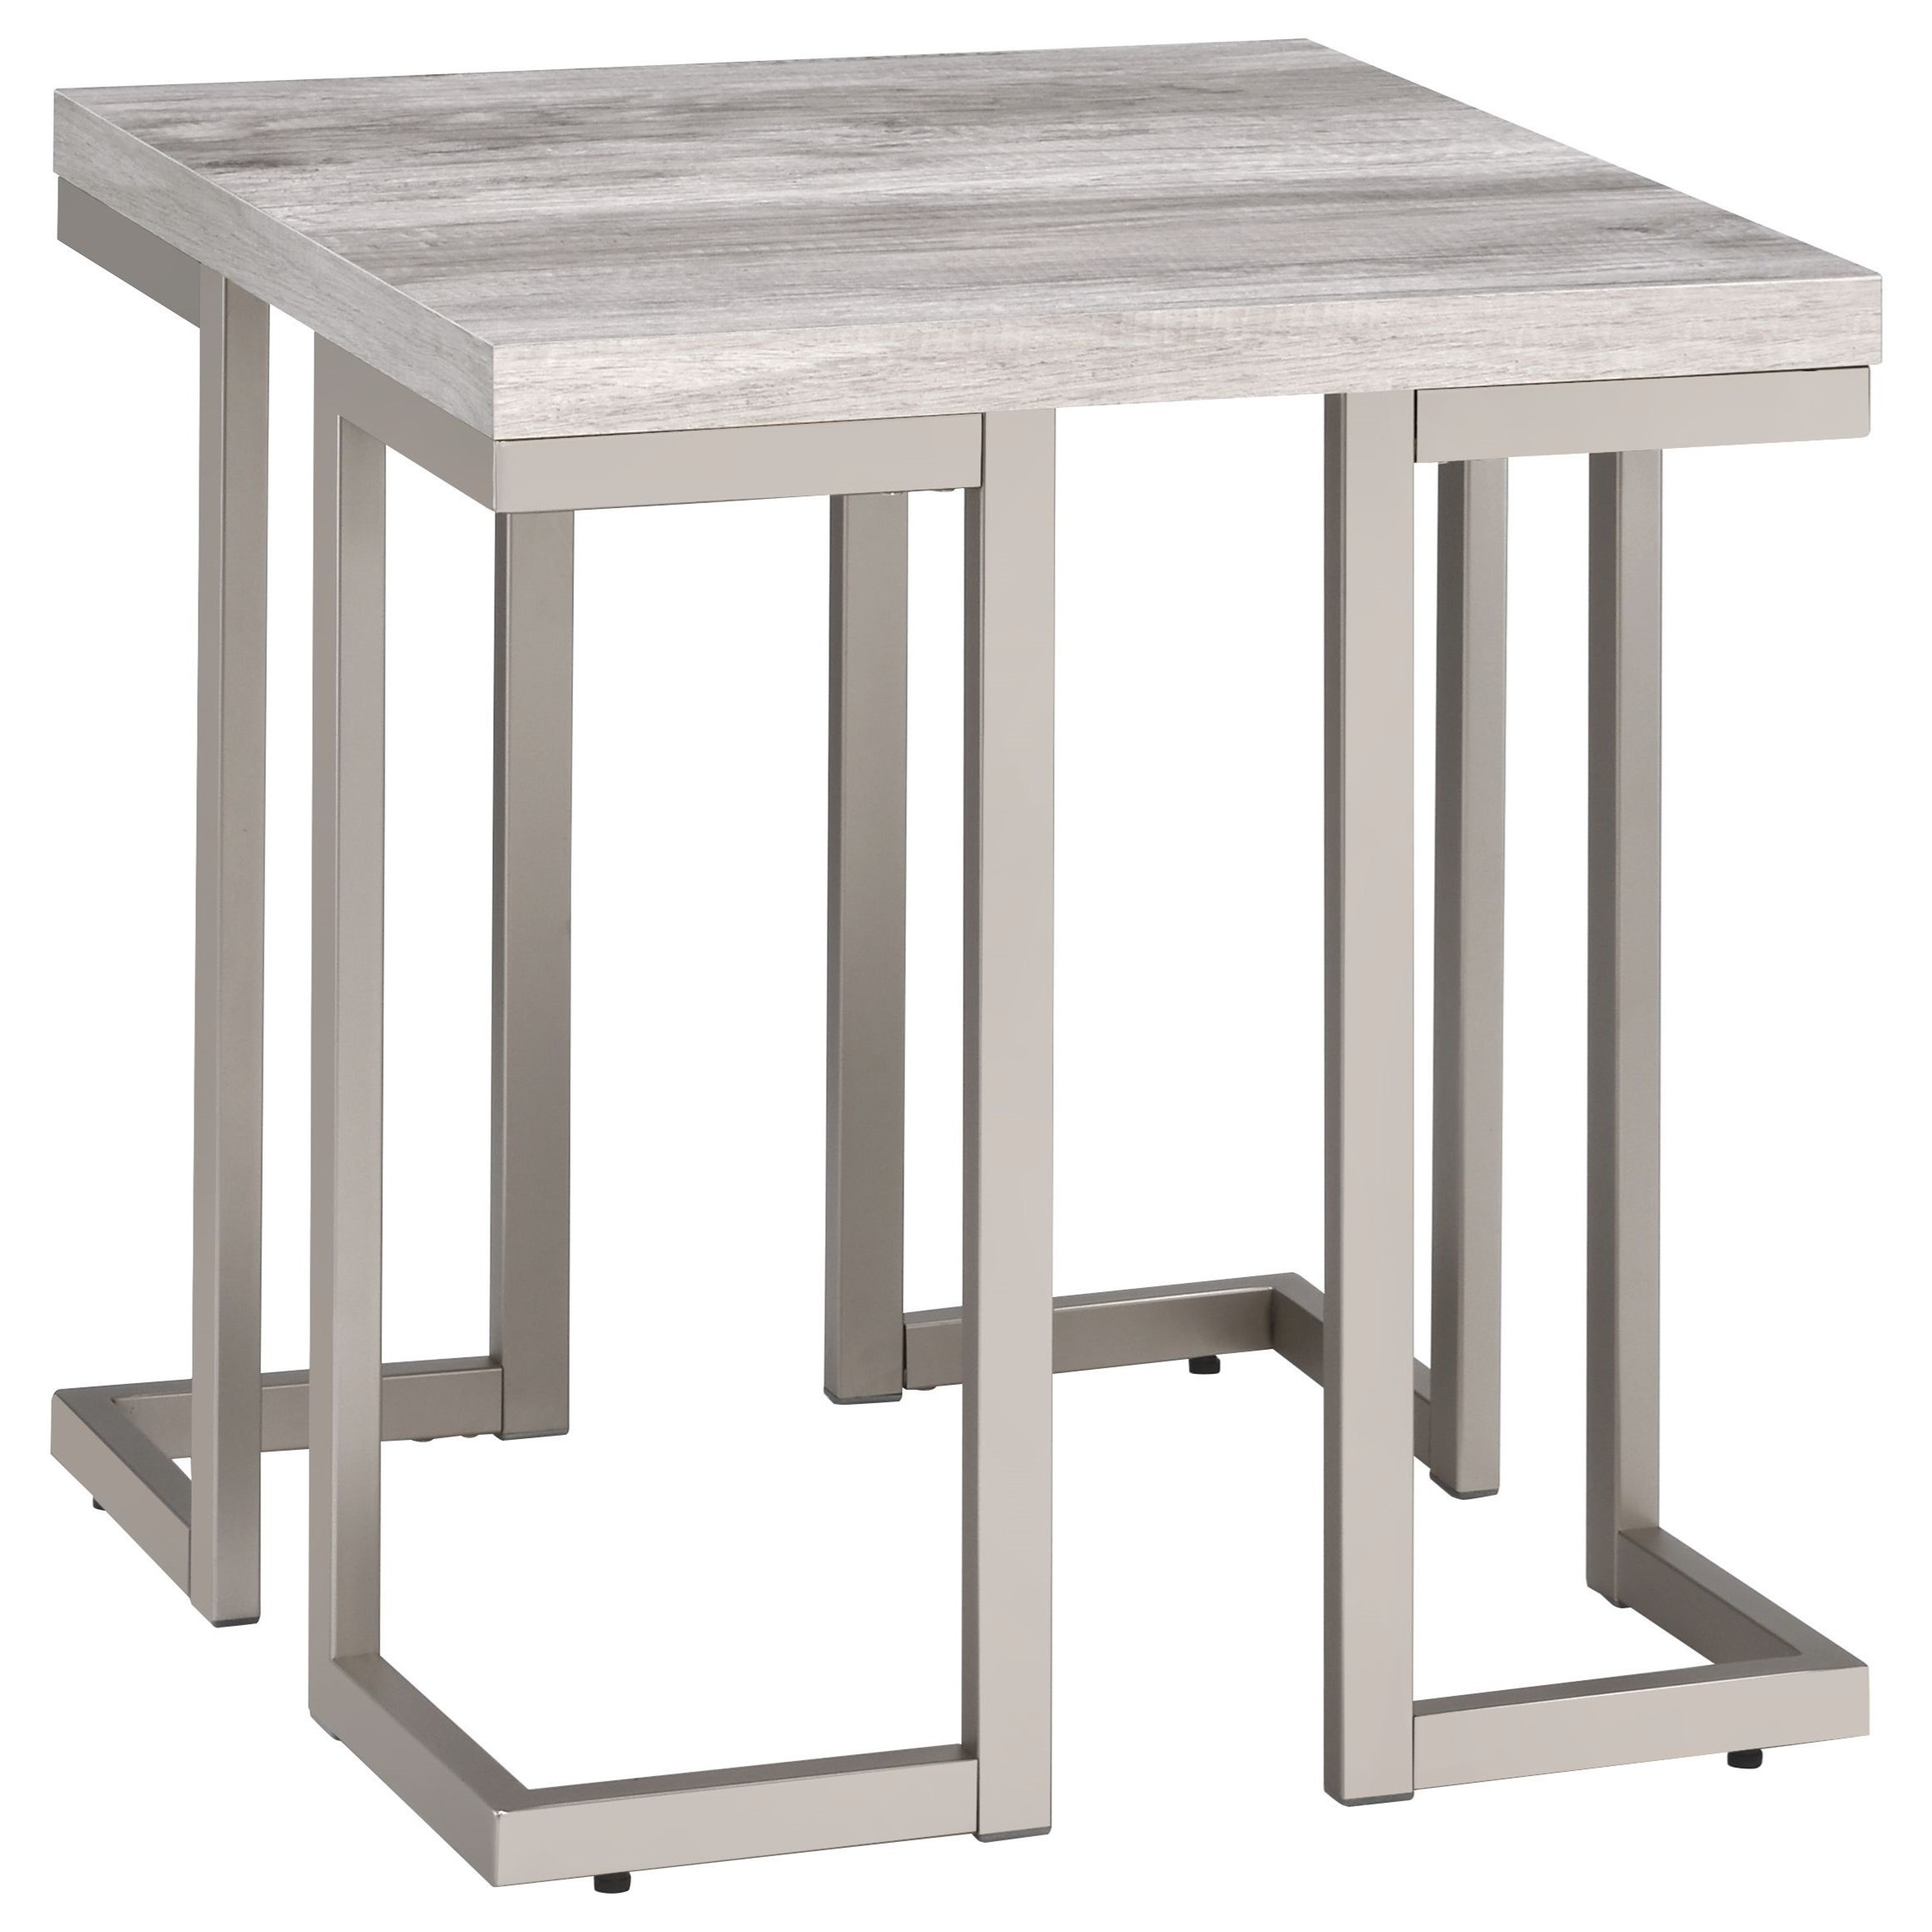 David End Table by Steve Silver at Darvin Furniture